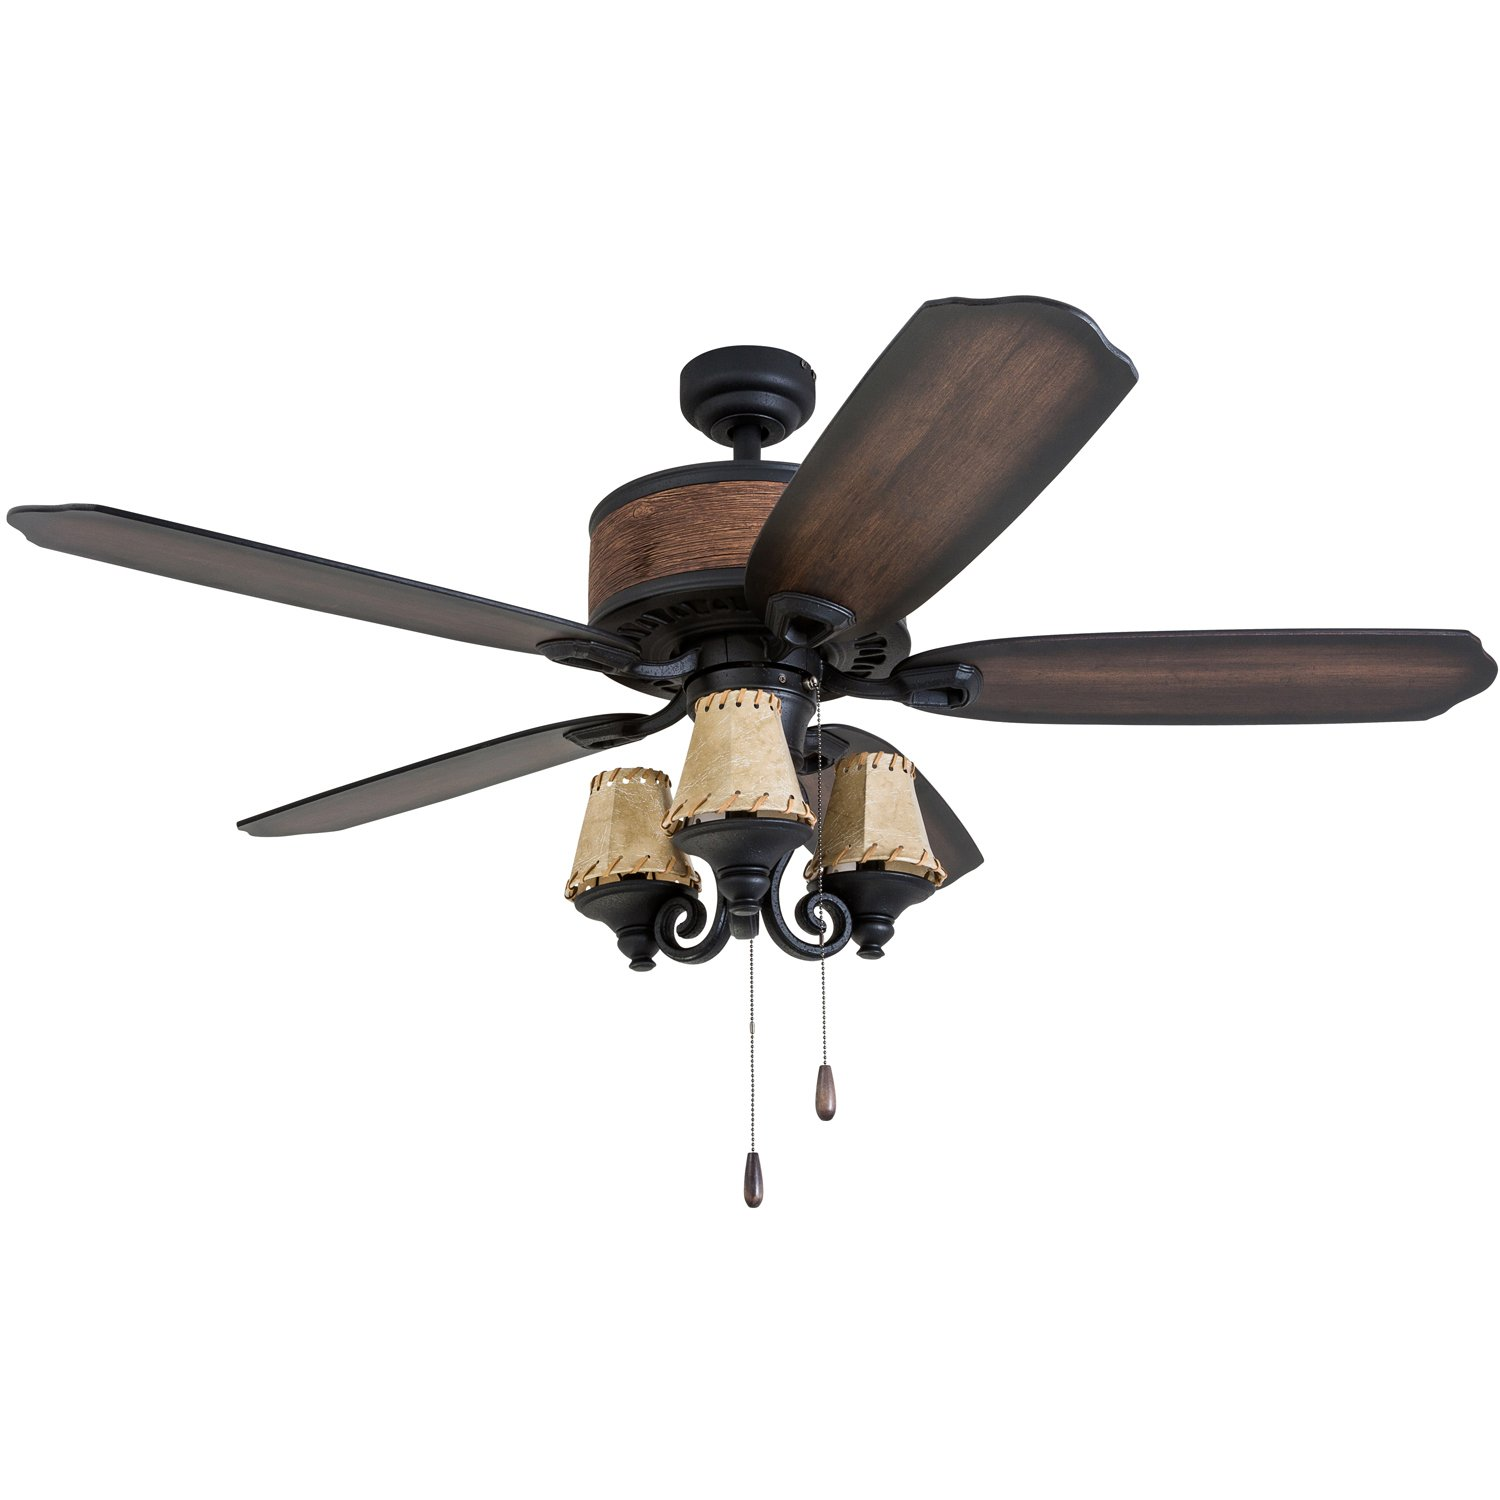 Prominence Home 41110-01 Almer Point 52'' Lodge Ceiling Fan with 3-Light, Faux Leather Lamp Shades, Cabin Inspired Dark Elm/Chestnut Blades, Rustic Style, Matte Black